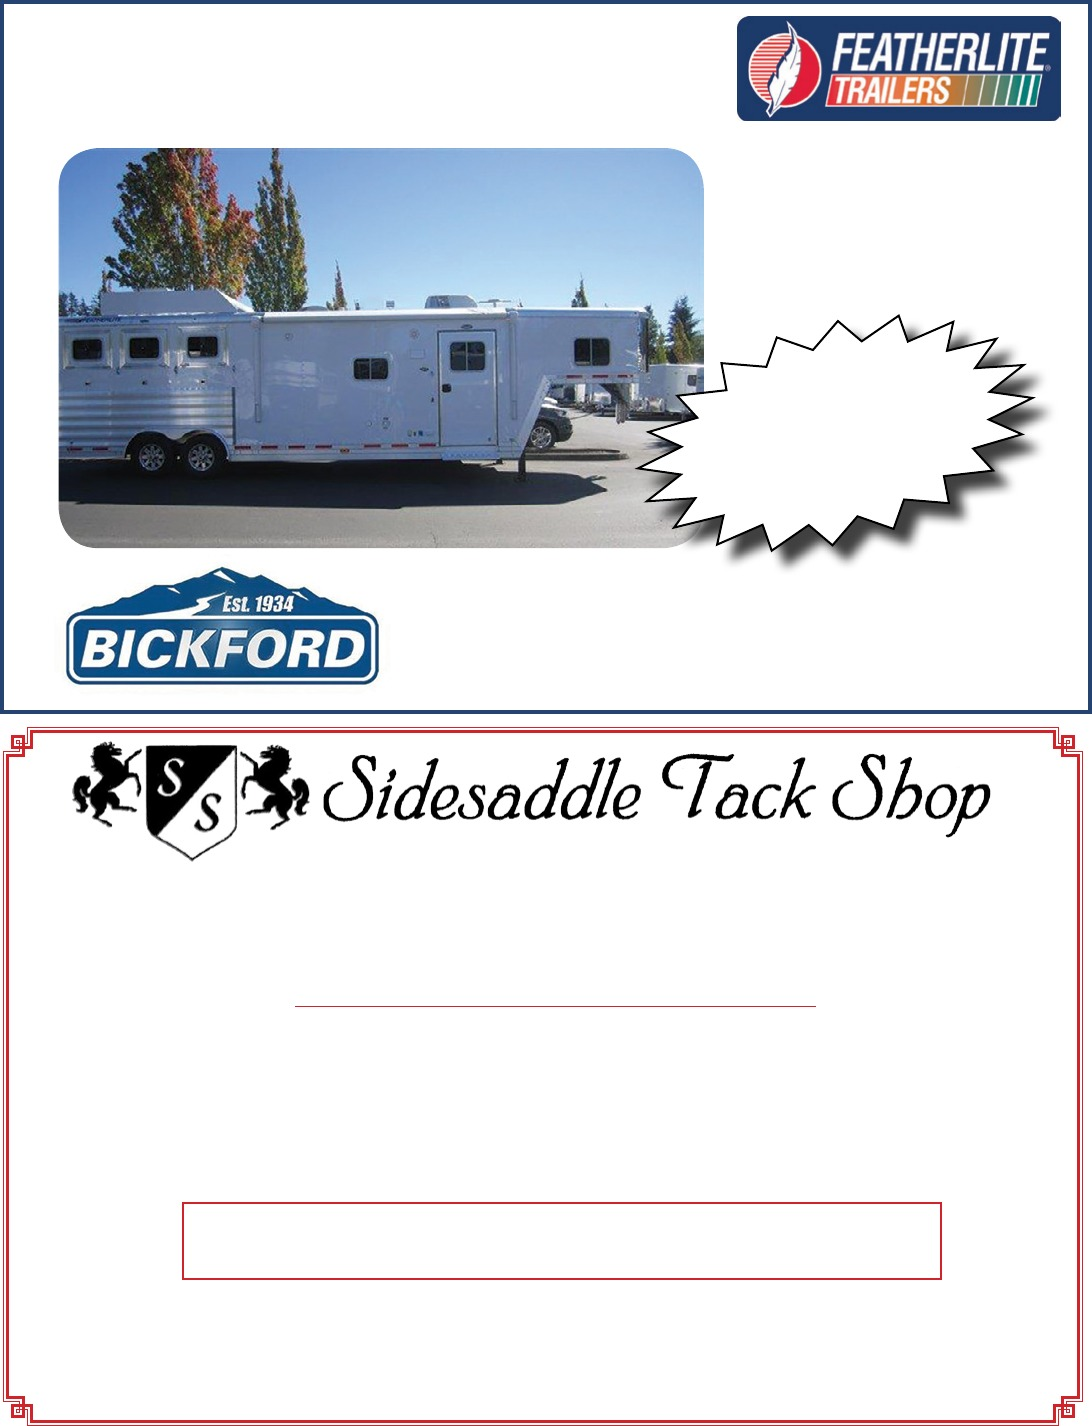 wiring diagram for gooseneck trailer jd stx38 featherlite trailers diagrams circuit maker